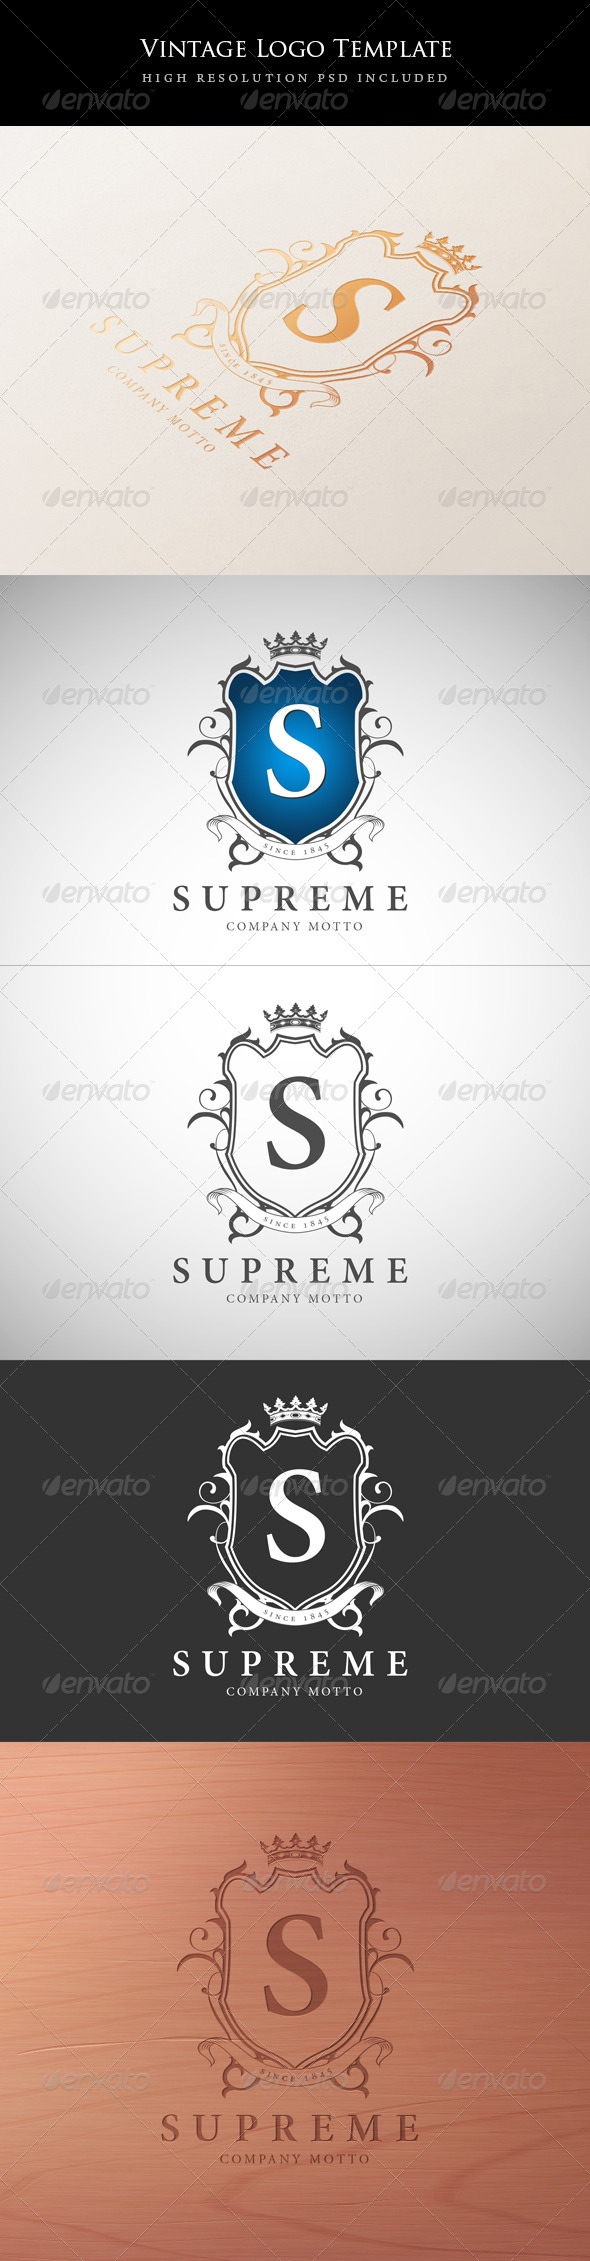 GraphicRiver Vintage Logo Template 5958089